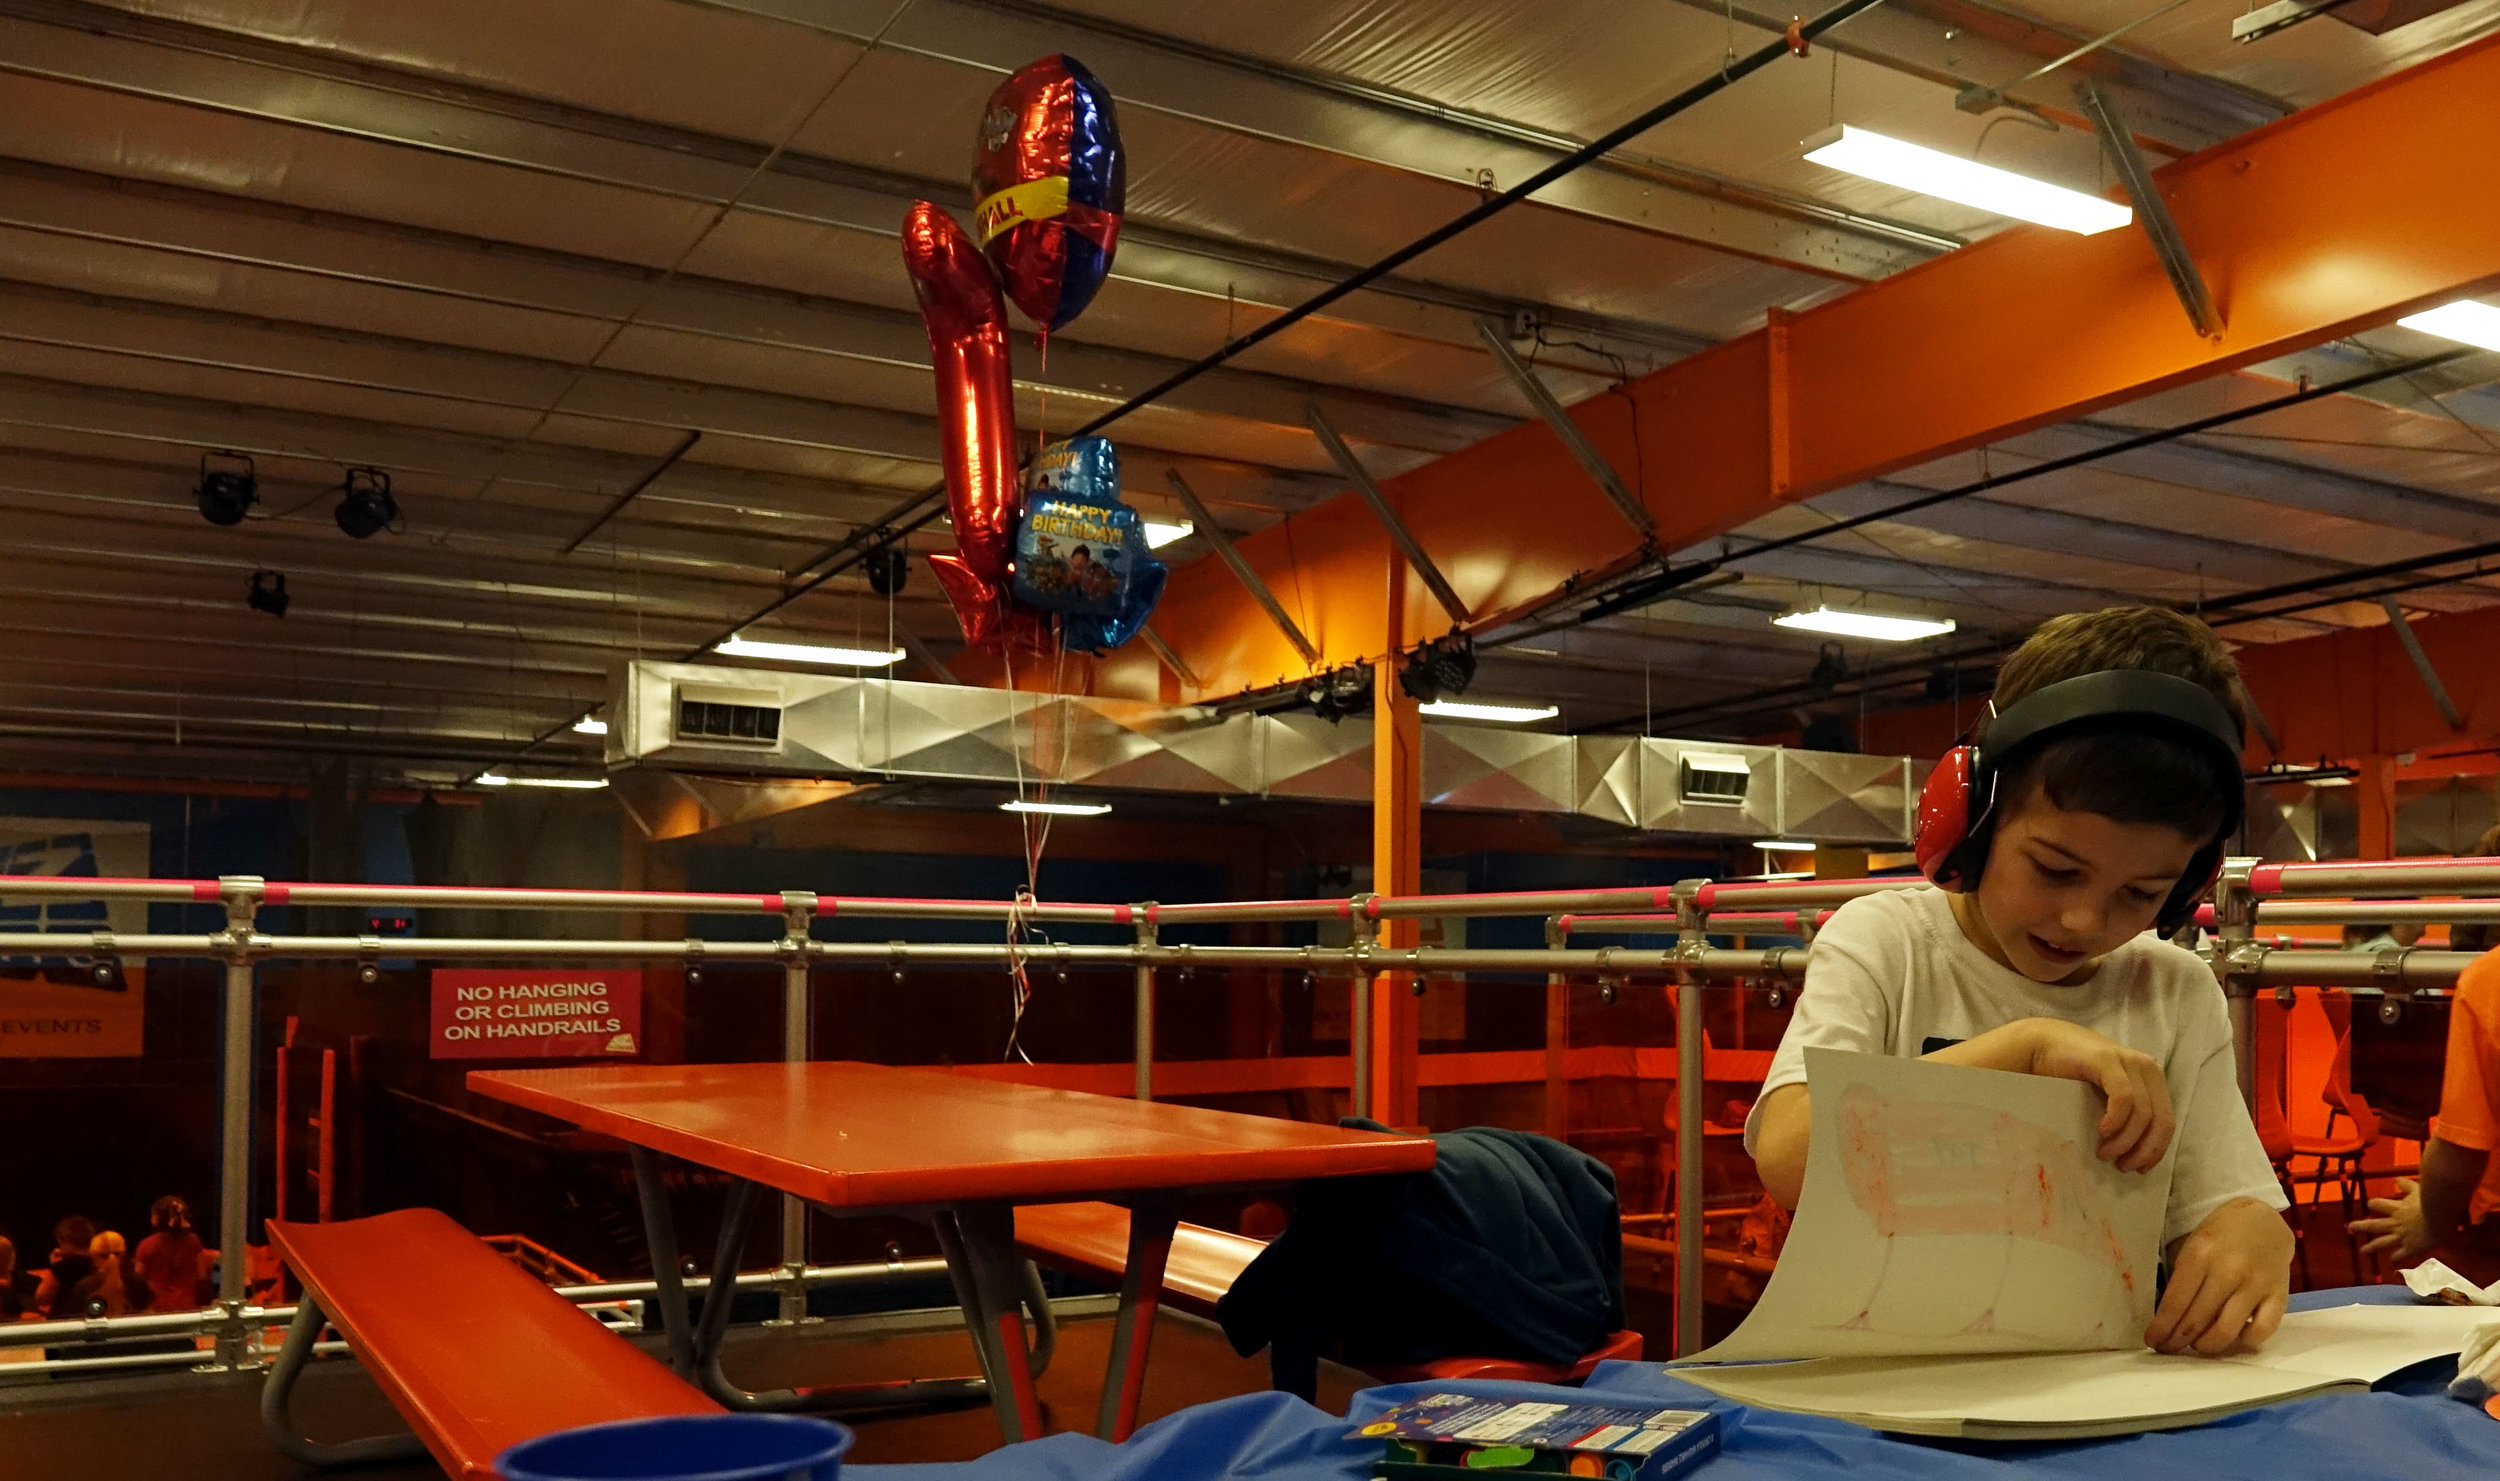 """Jaxon tears a page out of a coloring book during his birthday party at Sky Zone Trampoline Park in Springfield. """"One thing I wish people knew about taking care of a child with autism is that we try our best,"""" Jamie said. """"We do the best we can with what we are given."""" Credit: Kyra Haas / KBIA"""